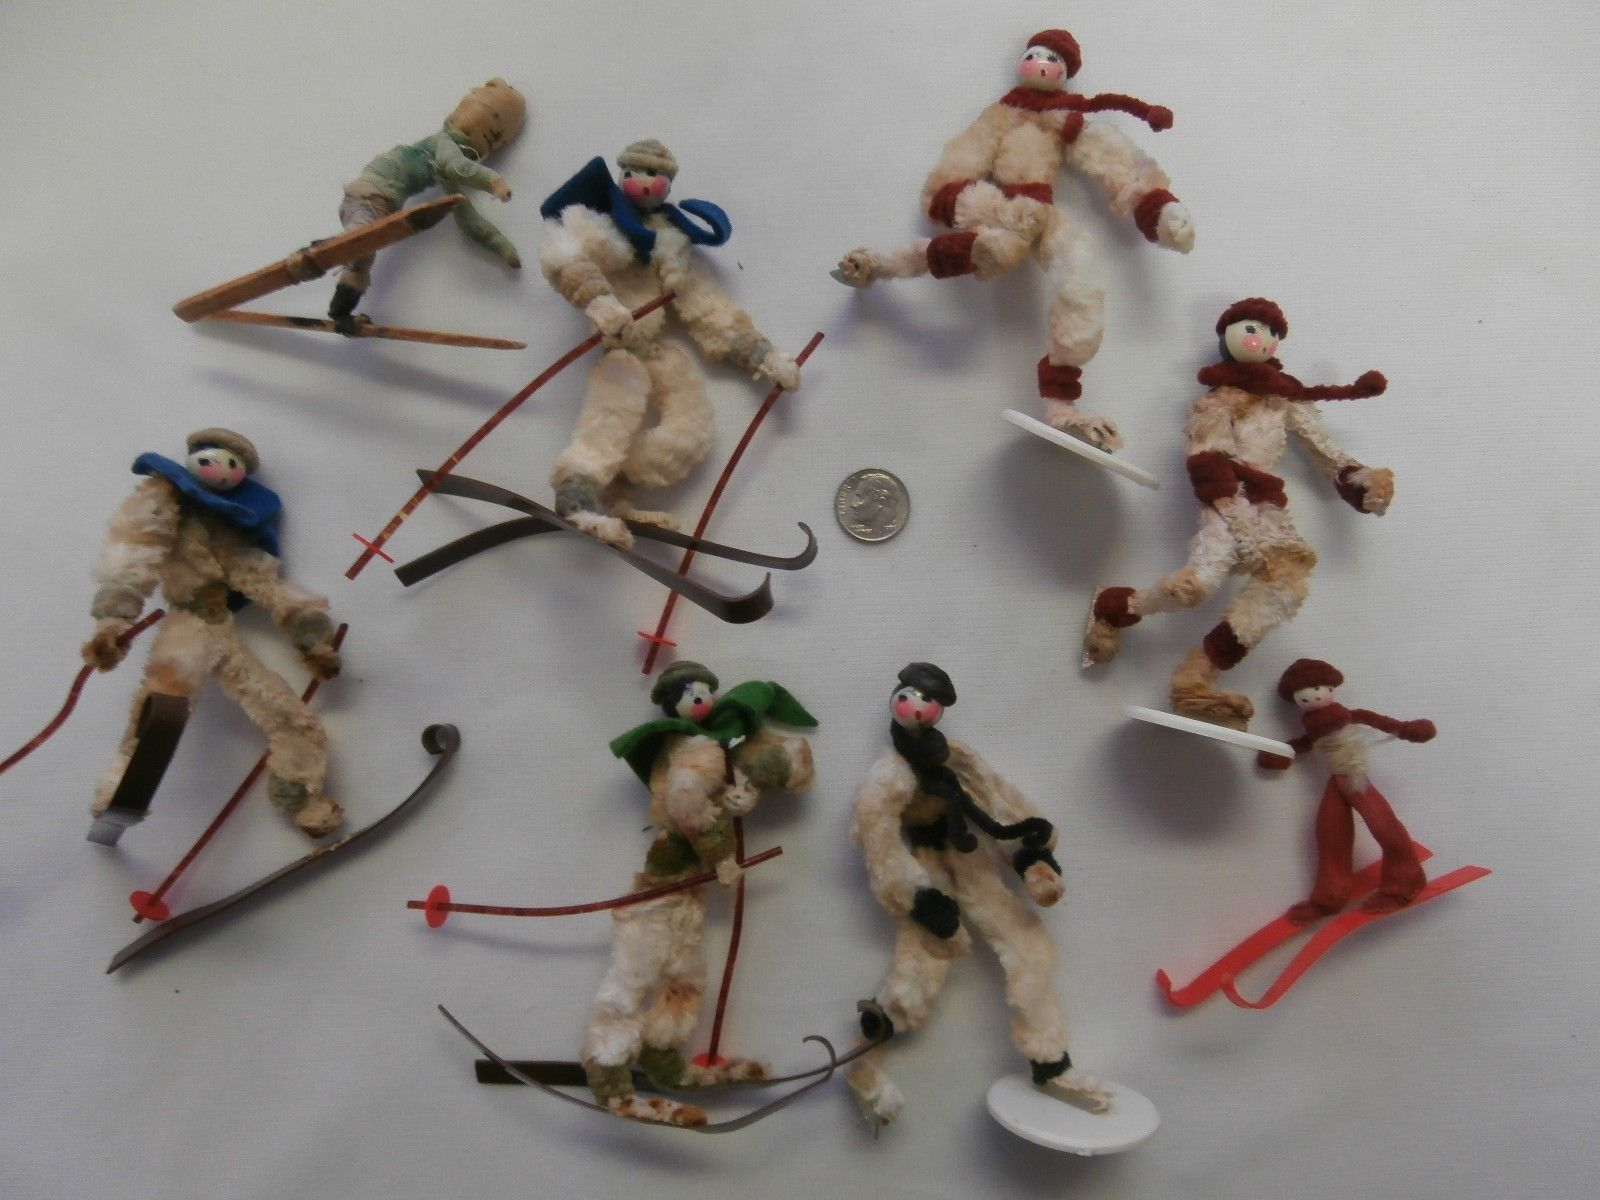 "LOT OF VINTAGE 4"" CHRISTMAS CHENILLE SKIERS & SKATERS CELLULOID SKIS BEAD HEADS  in Collectibles, Holiday & Seasonal, Christmas: Vintage (Pre-1946), Figures, Other Vint. Christmas Figures 